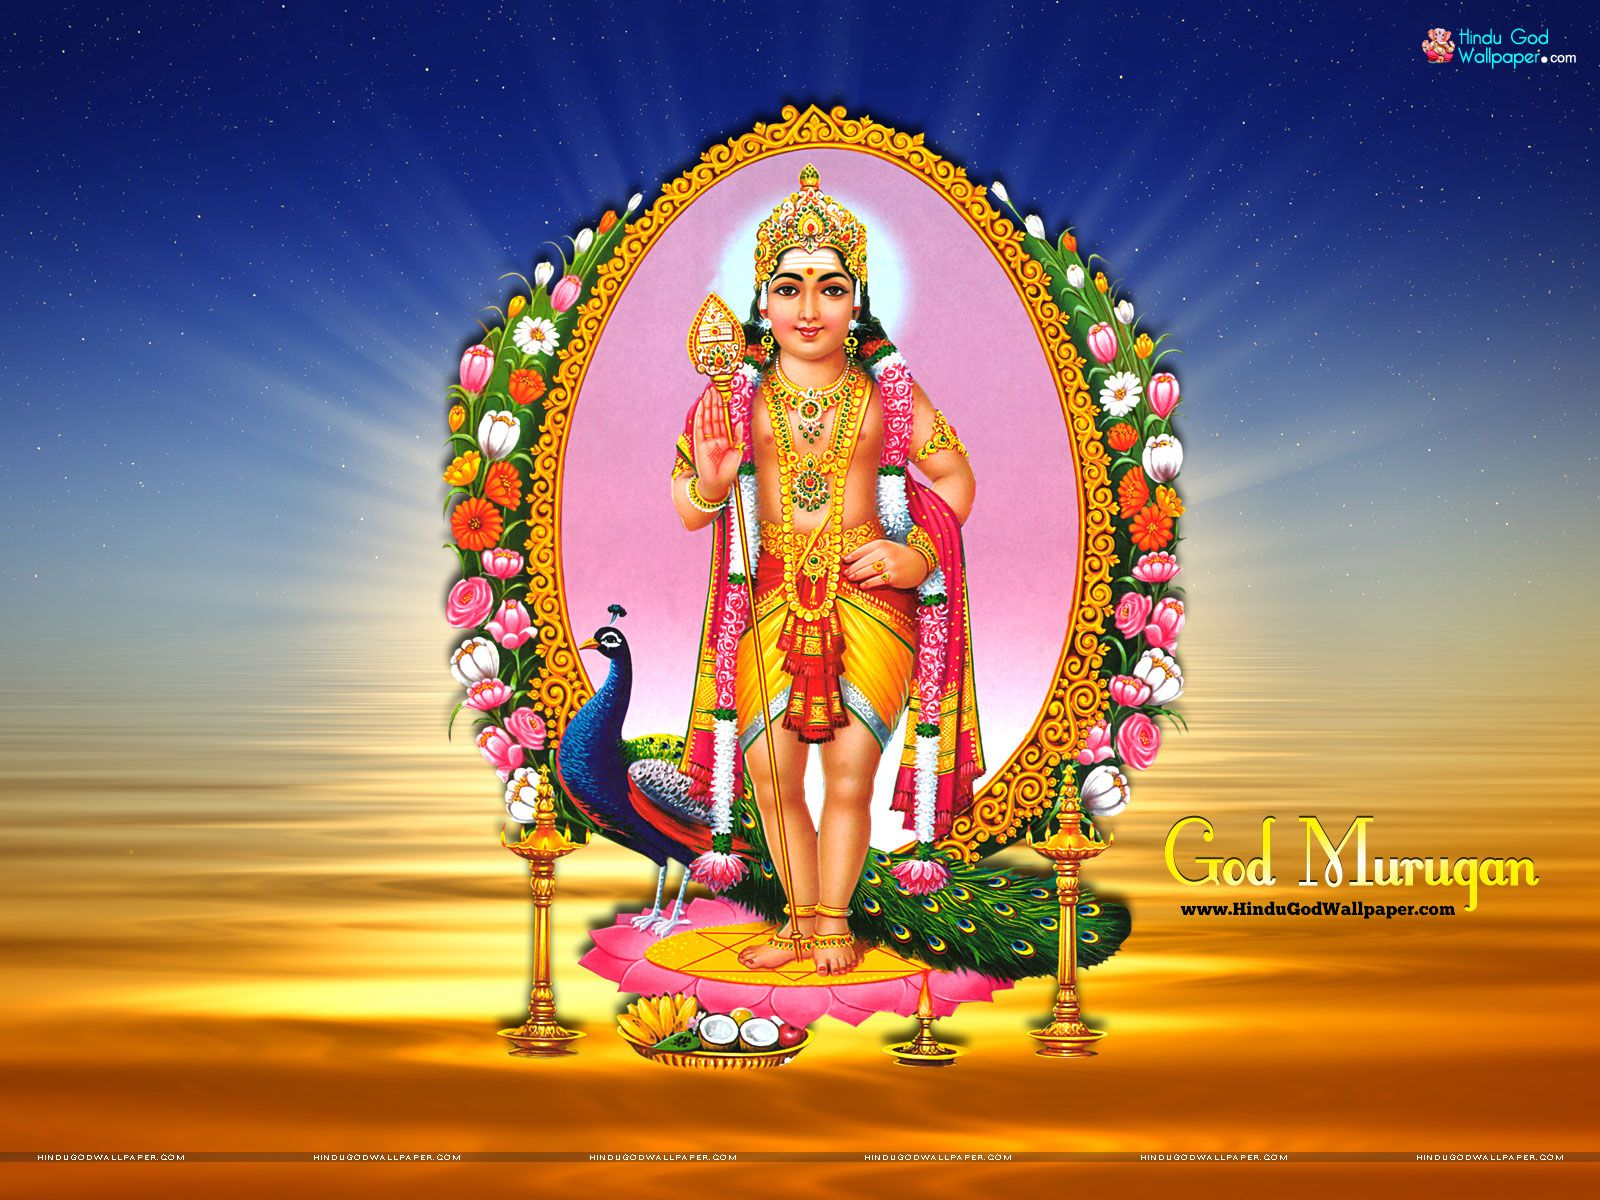 Tamil god murugan wallpapers images photos download - God images wallpapers ...